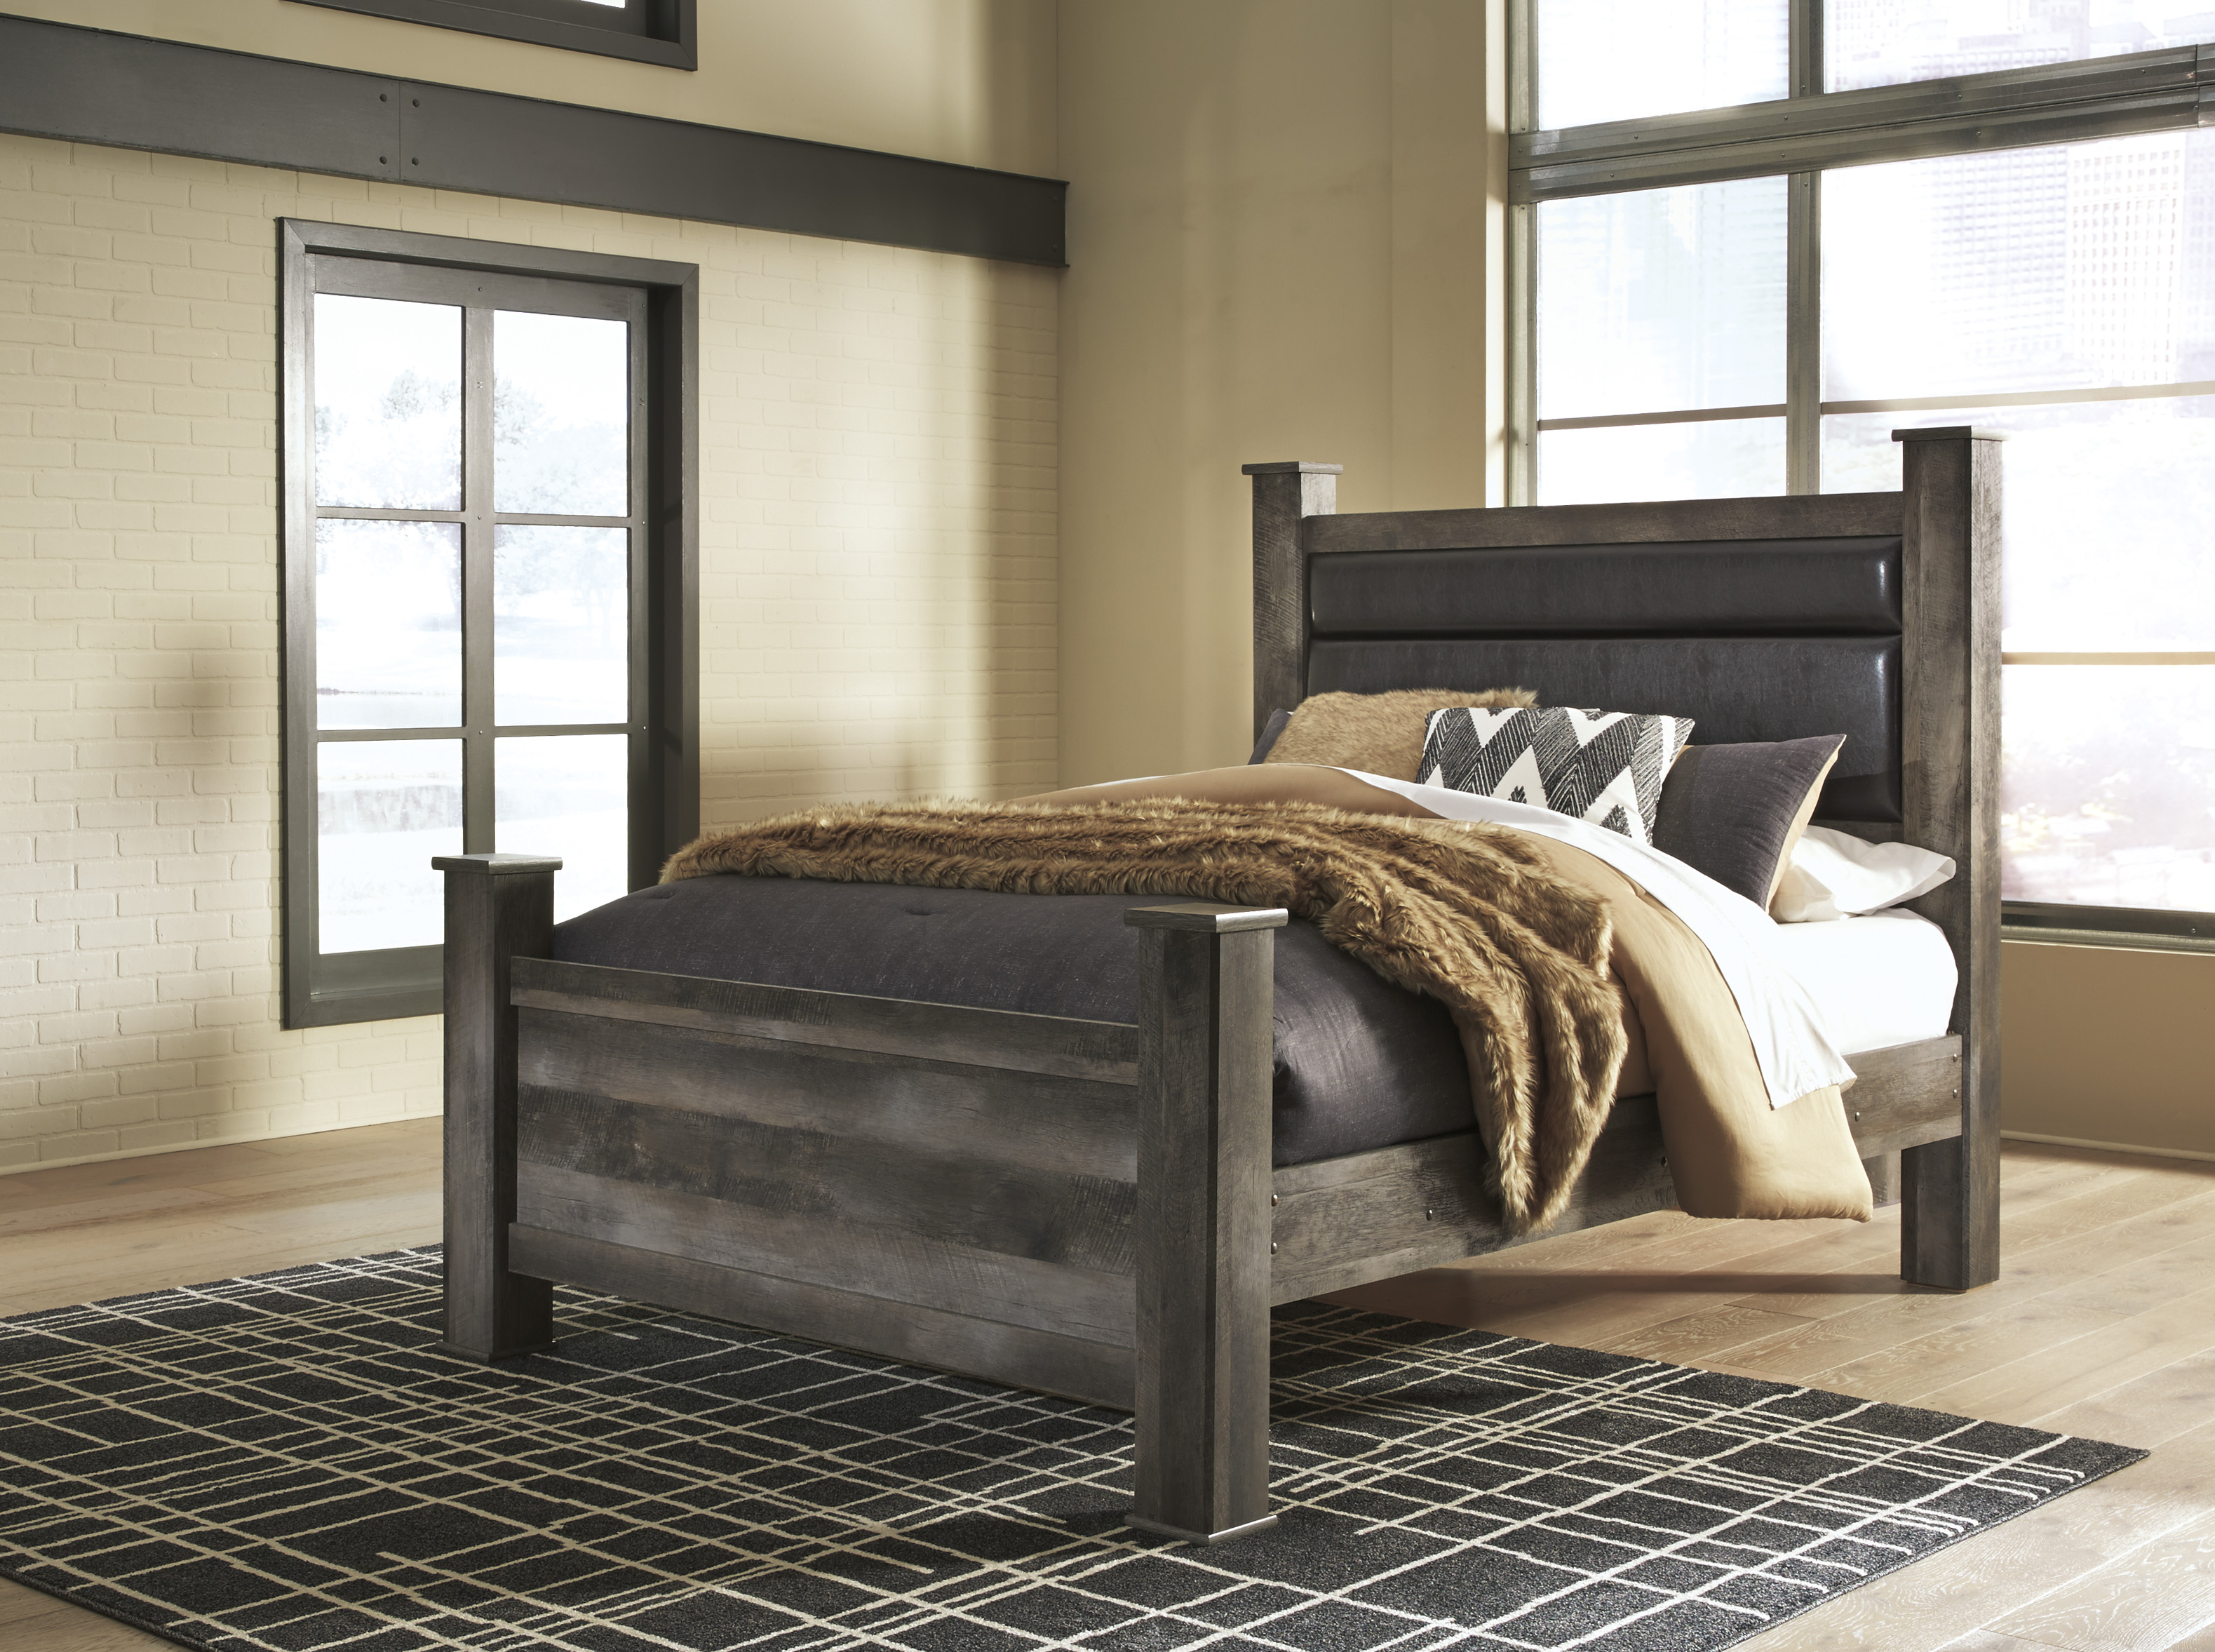 Wynnlow Gray Casual Upholstered Poster Bedroom Set Free Delivery Marjen Of Chicago Chicago